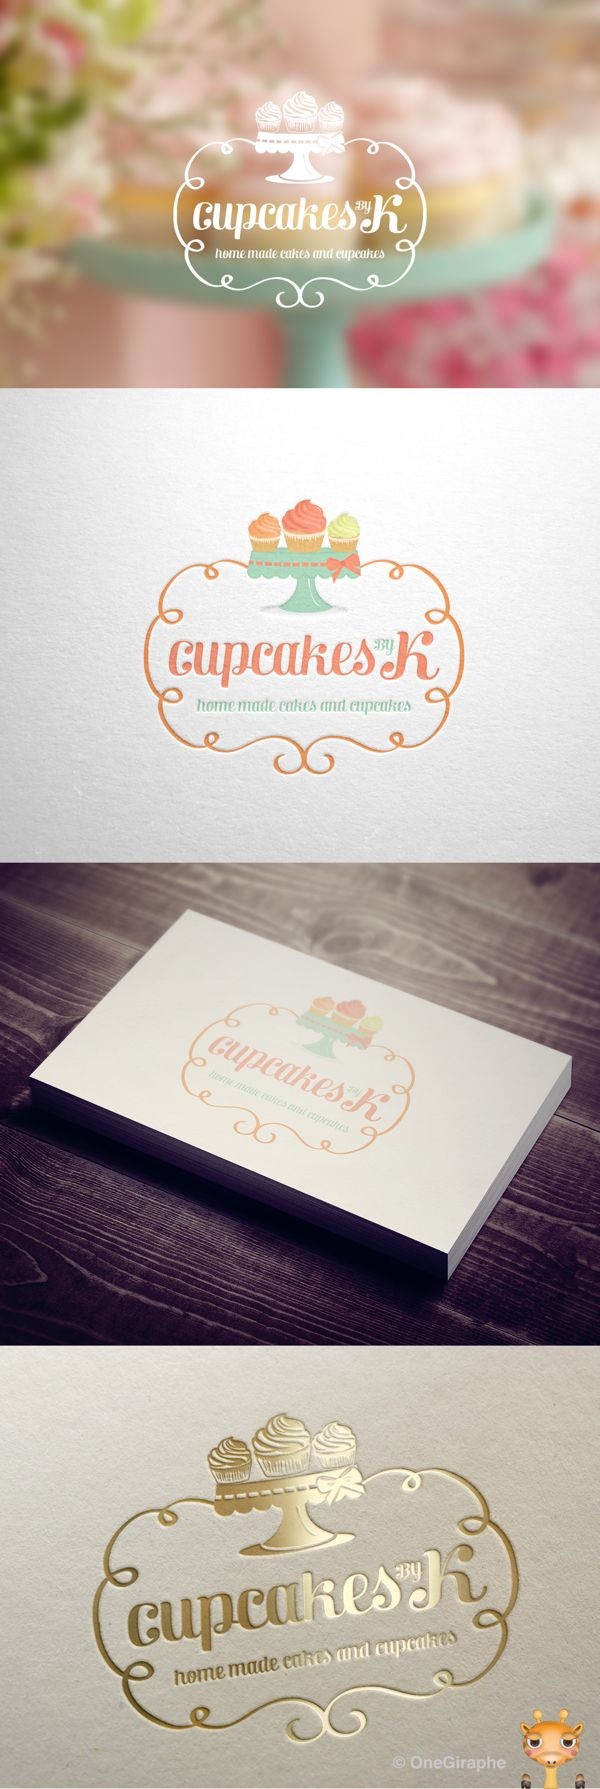 Cupcakes by K - Logo for Sale! by OneGiraphe , via Behance